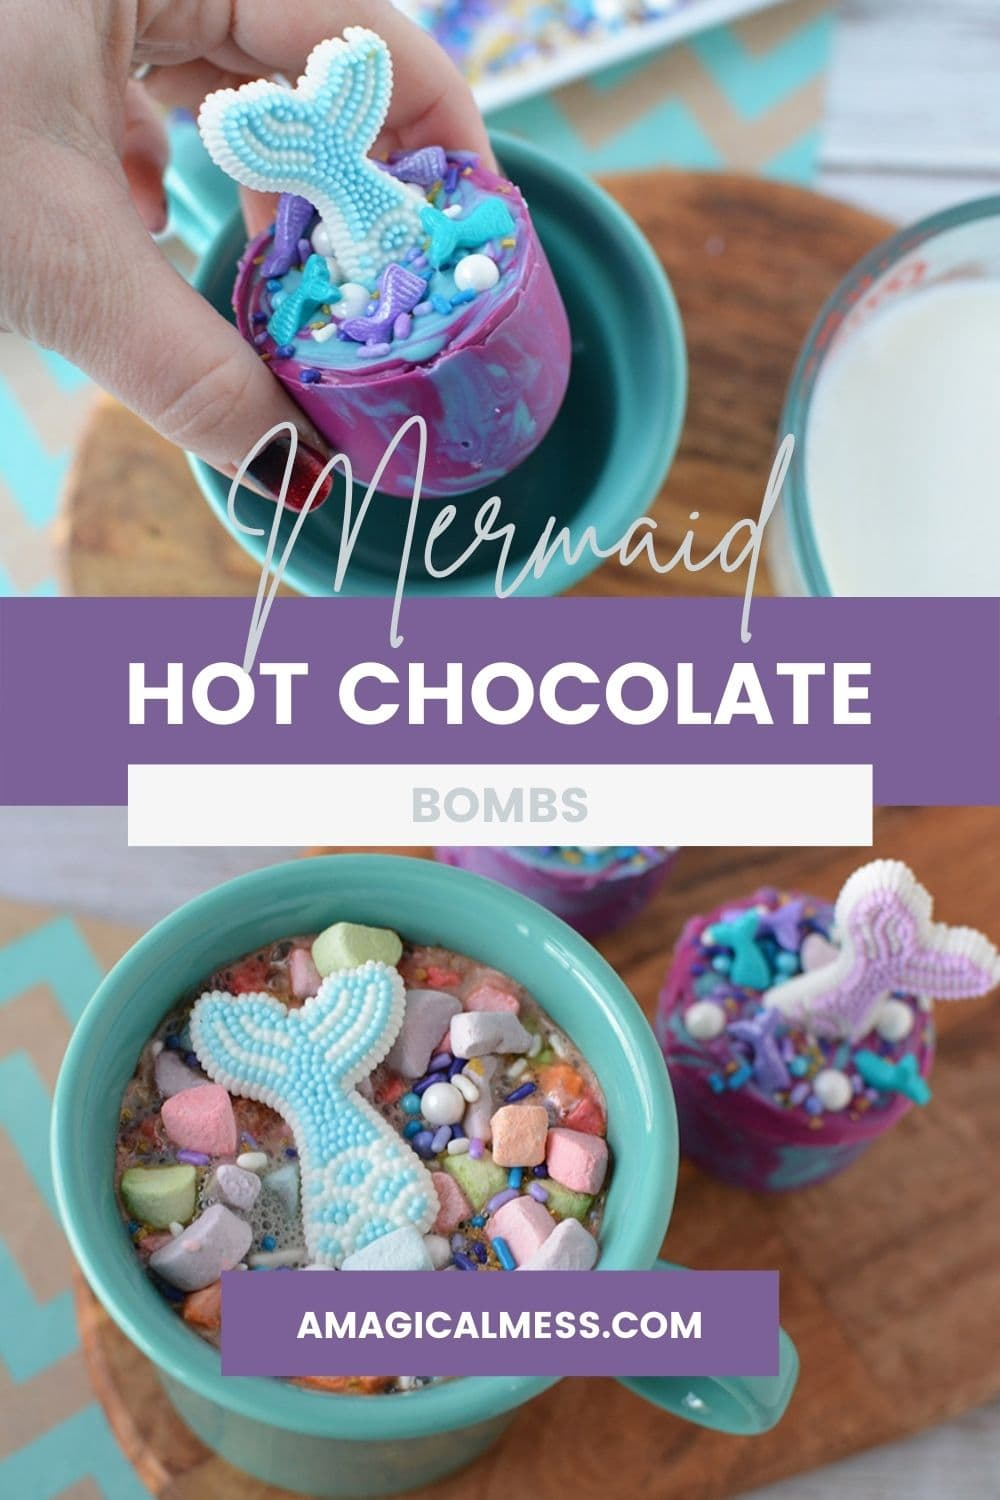 Mermaid hot chocolate. Dropping melt into a mug and finished product.